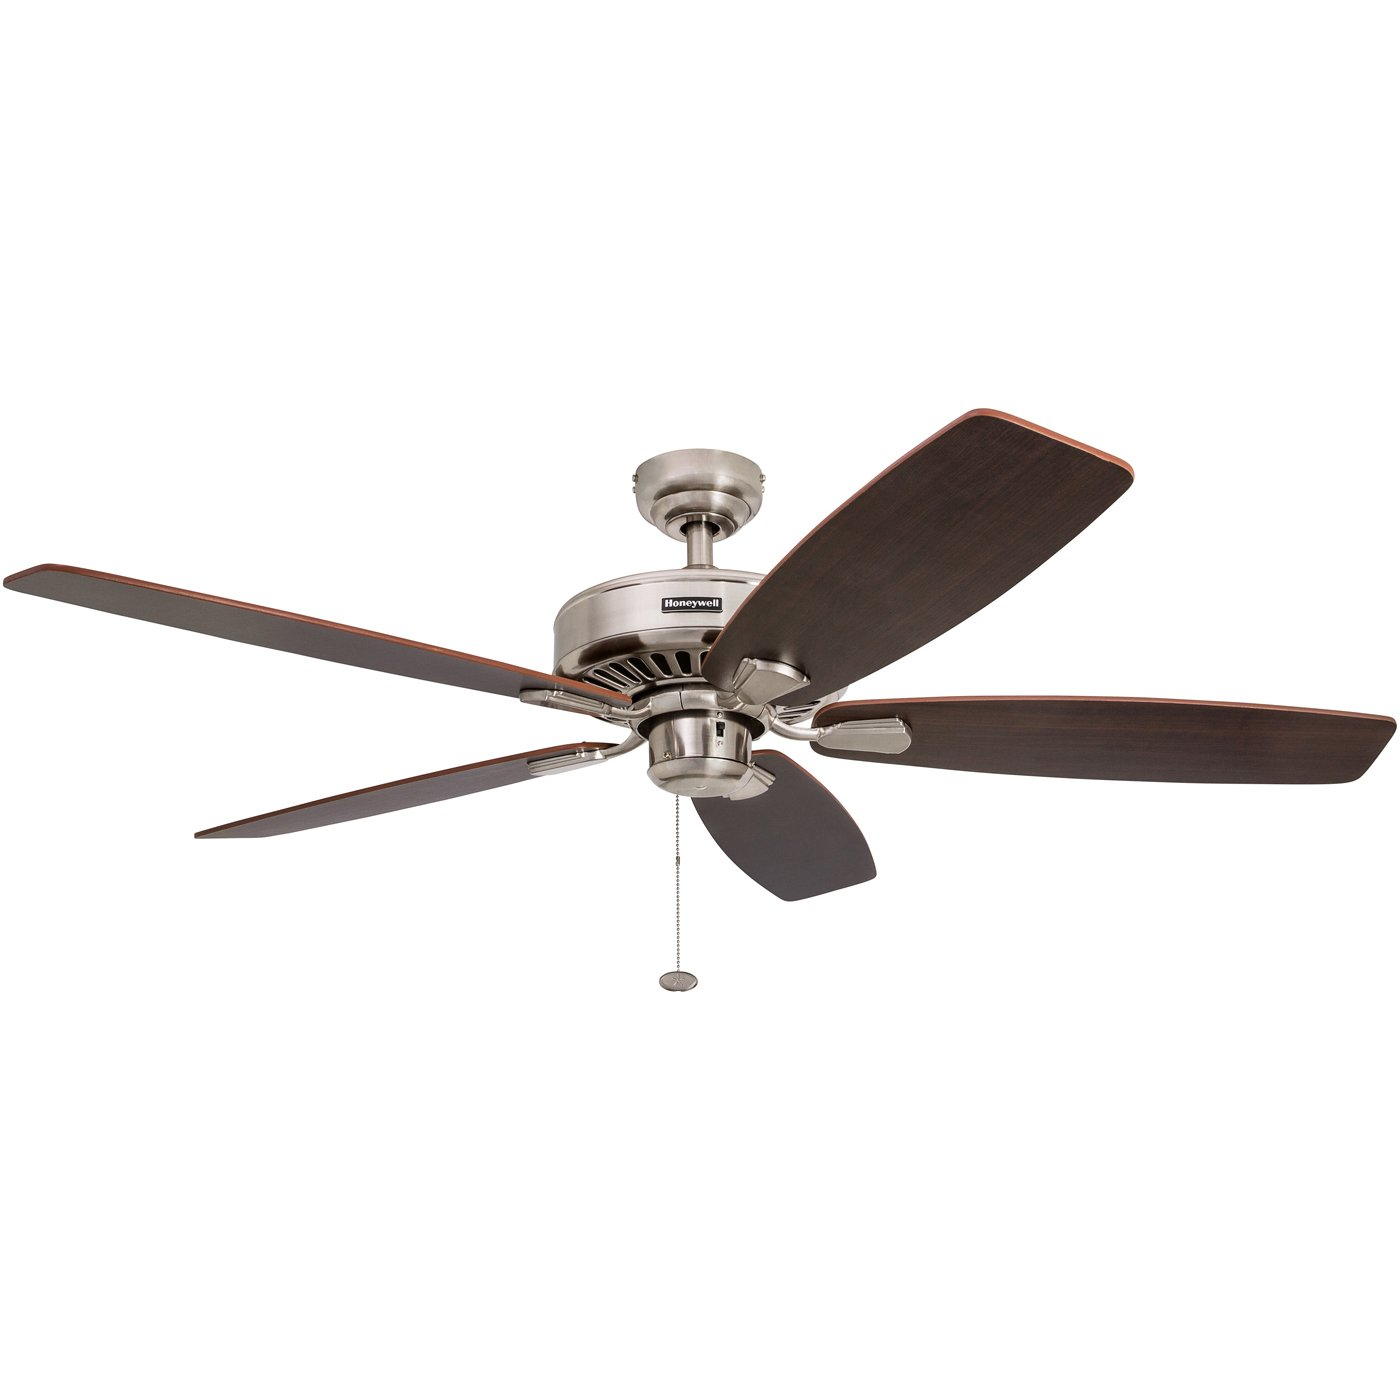 Honeywell Sutton 52-Inch Ceiling Fan, Energy Star Certified, Five Reversible Burnt Maple/Light Oak Blades, Brushed Nickel